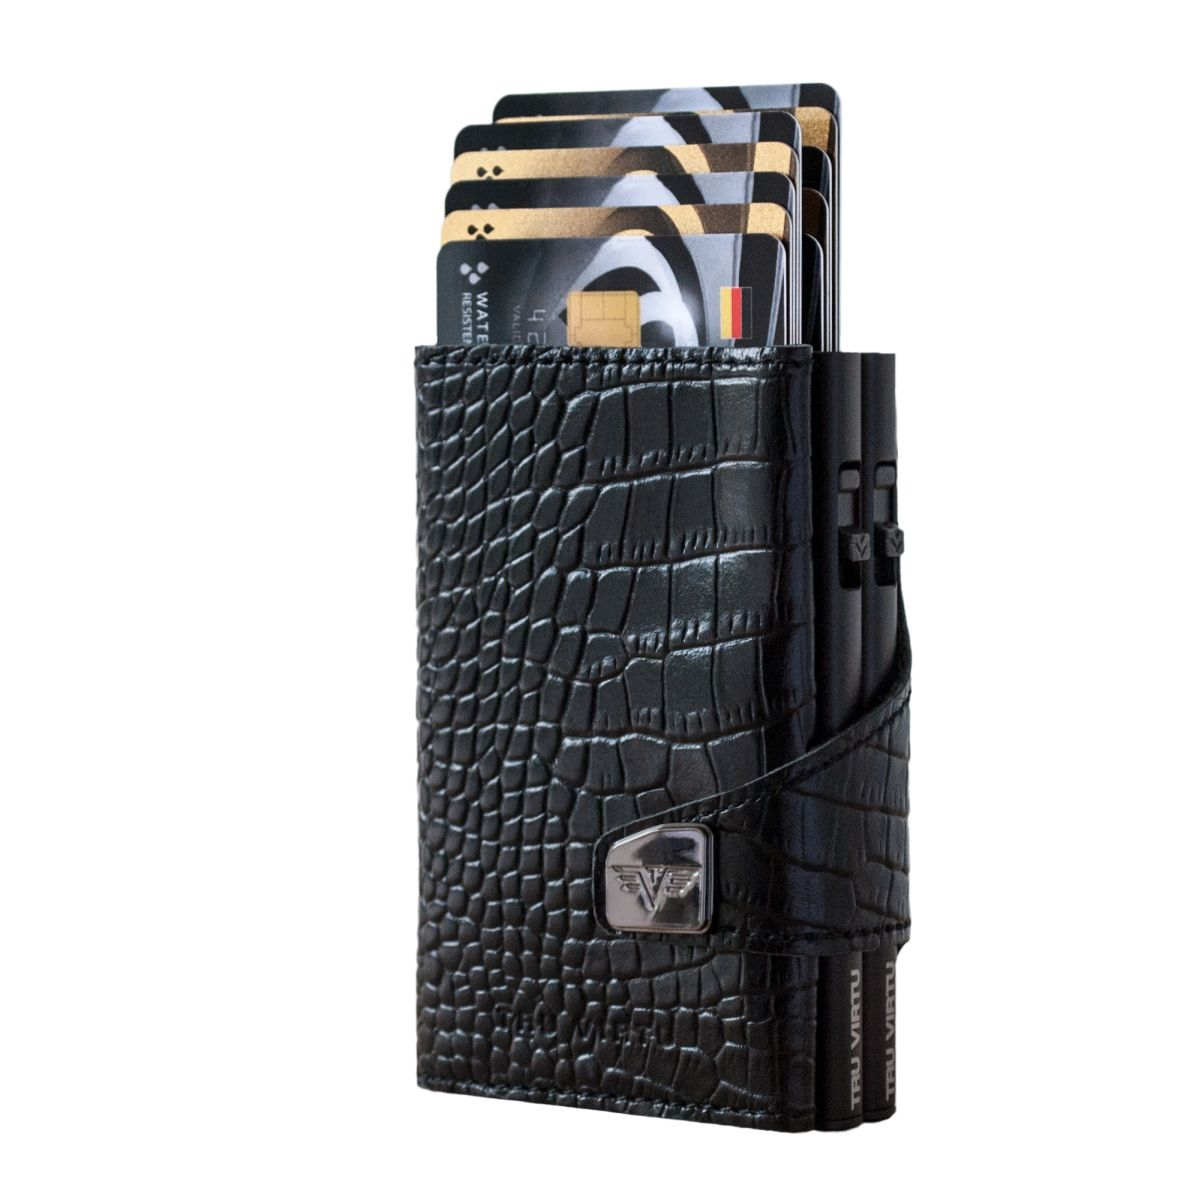 TRU VIRTU Click n Slide Double Wallet - Croco Black